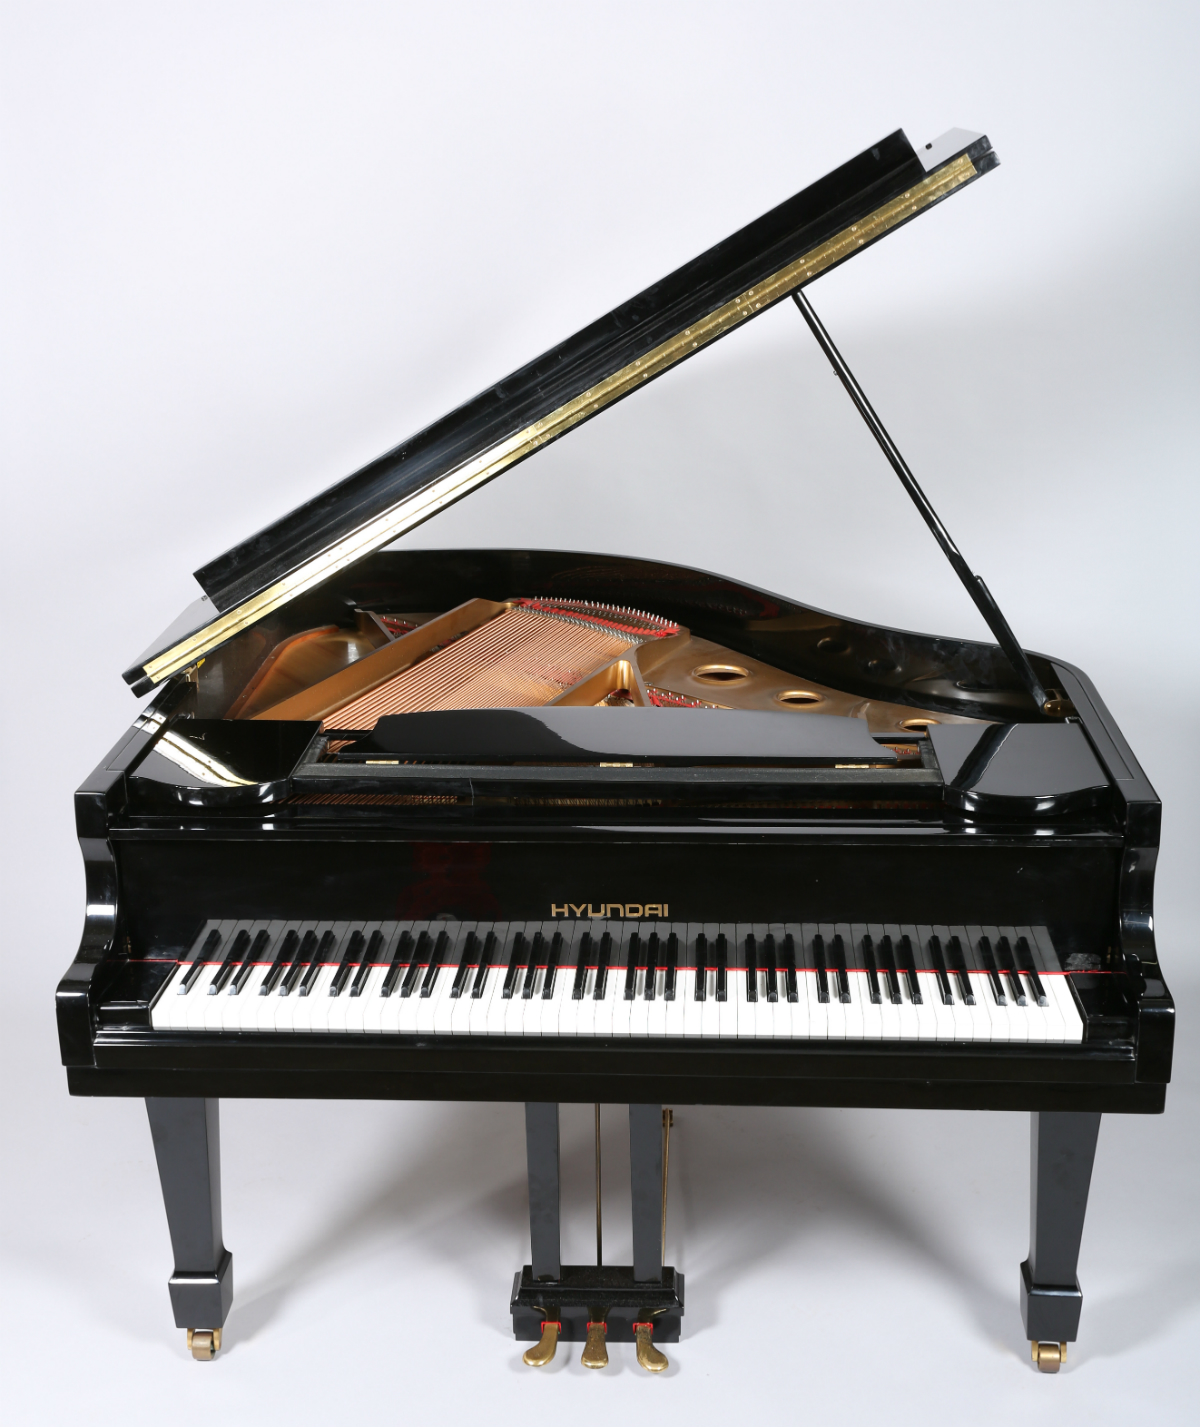 Blutuner grand piano, sold £1000